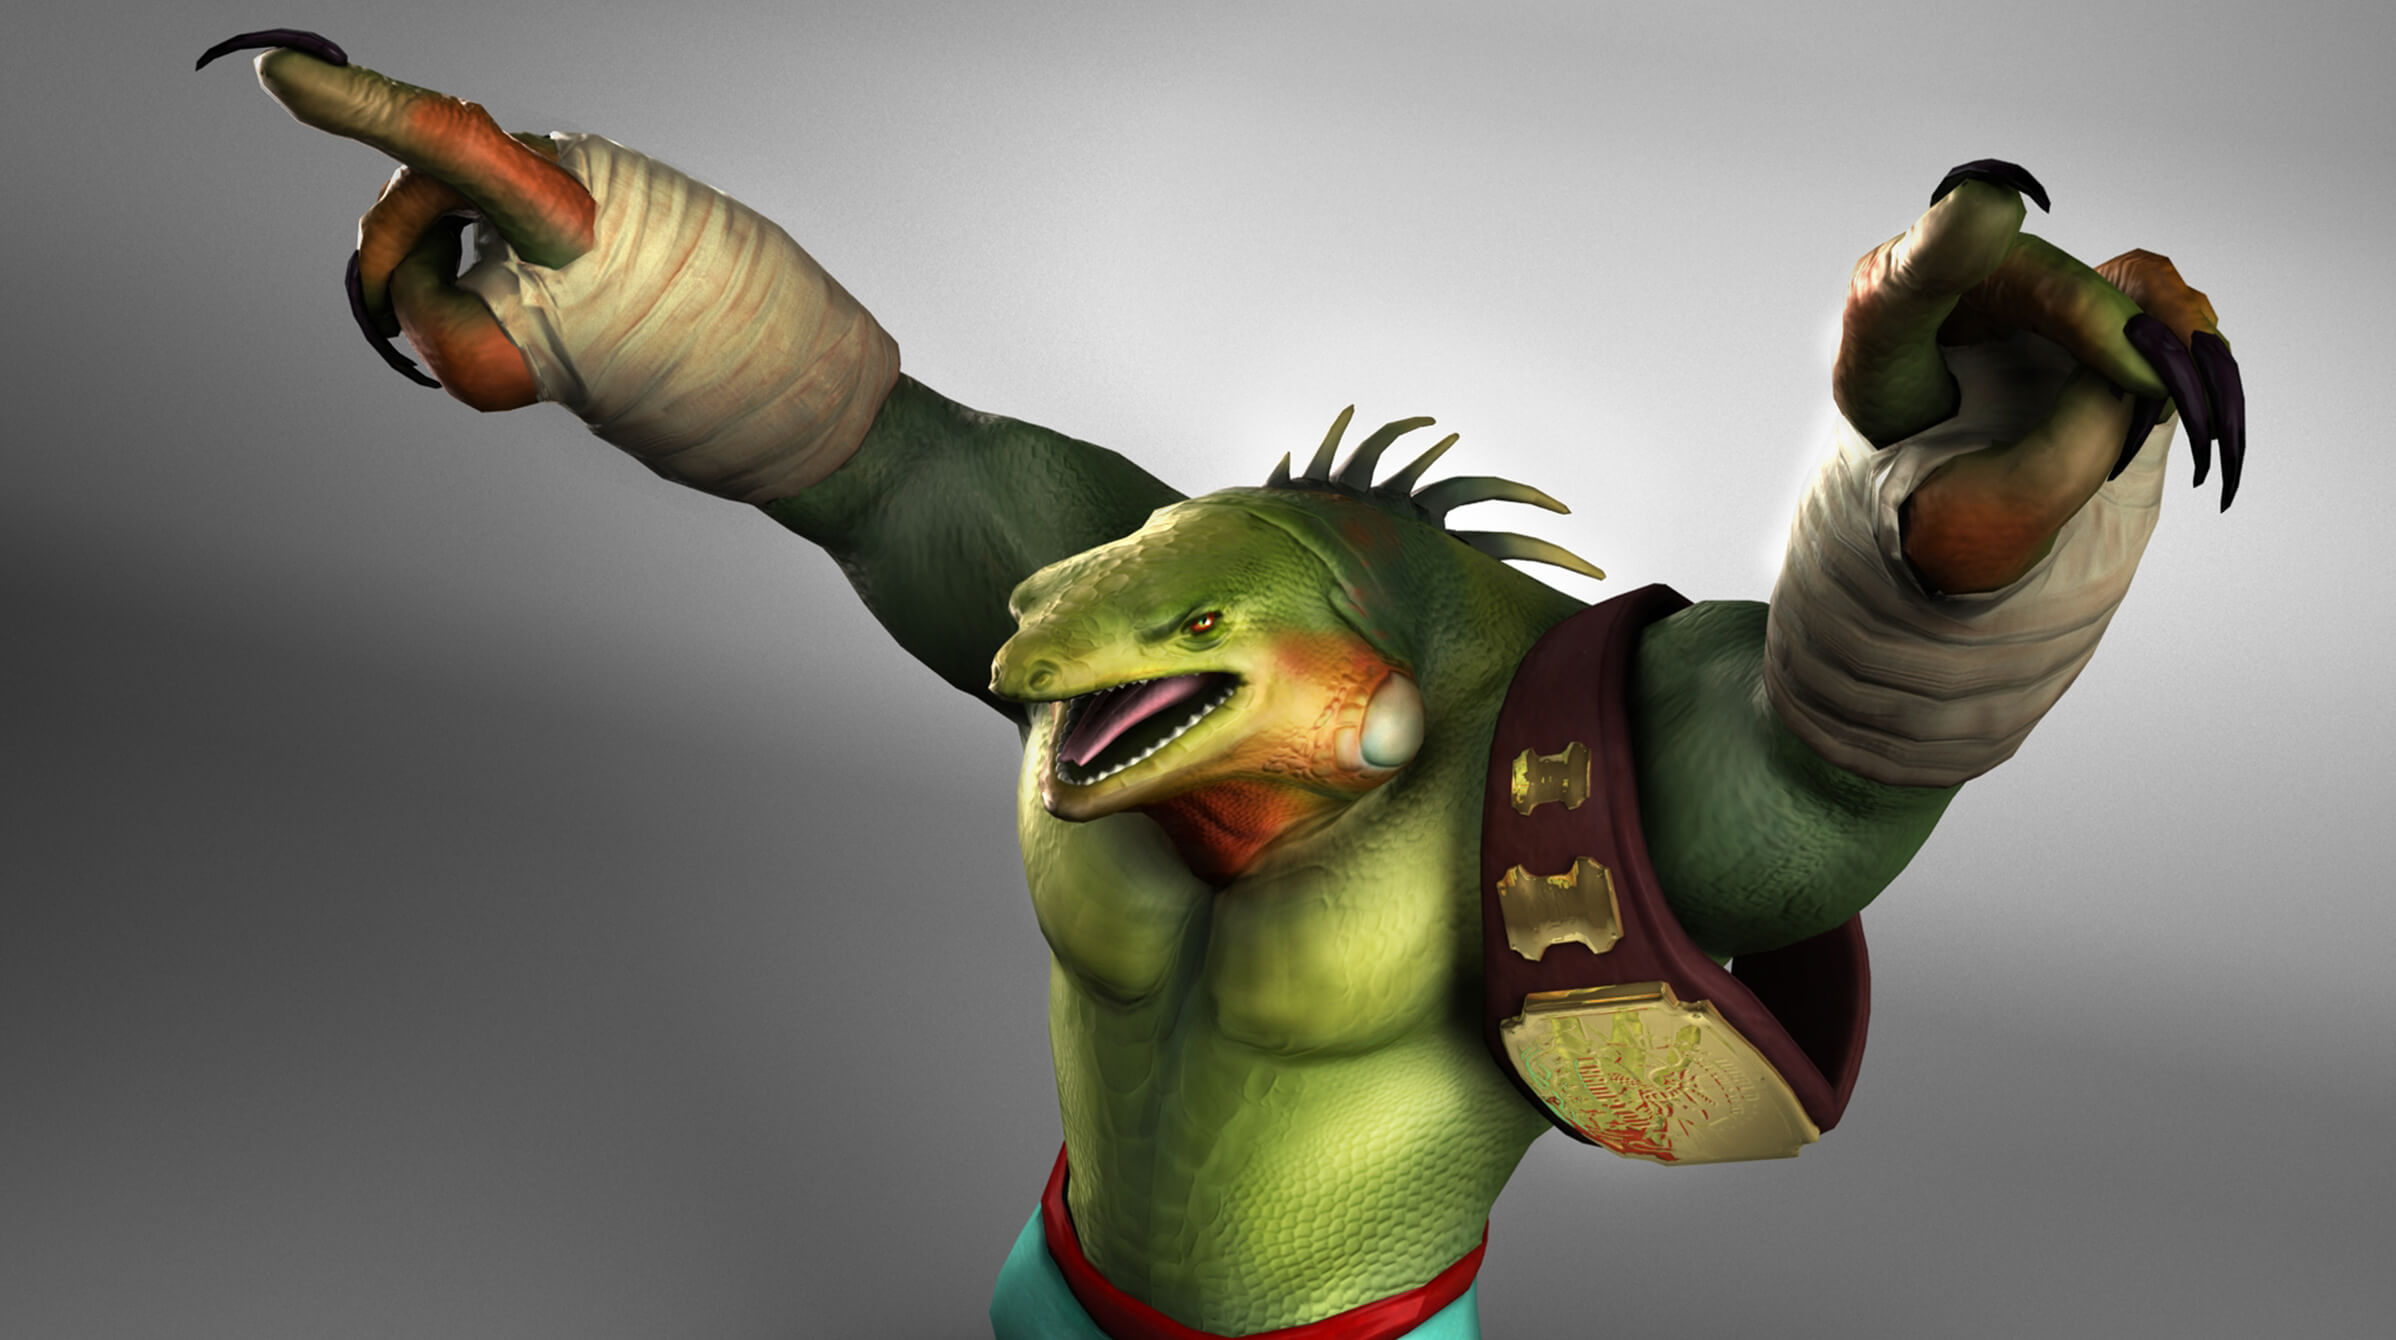 computer-generated 3D model of a muscular lizard with bandaged wrists and a championship belt slung around its shoulder